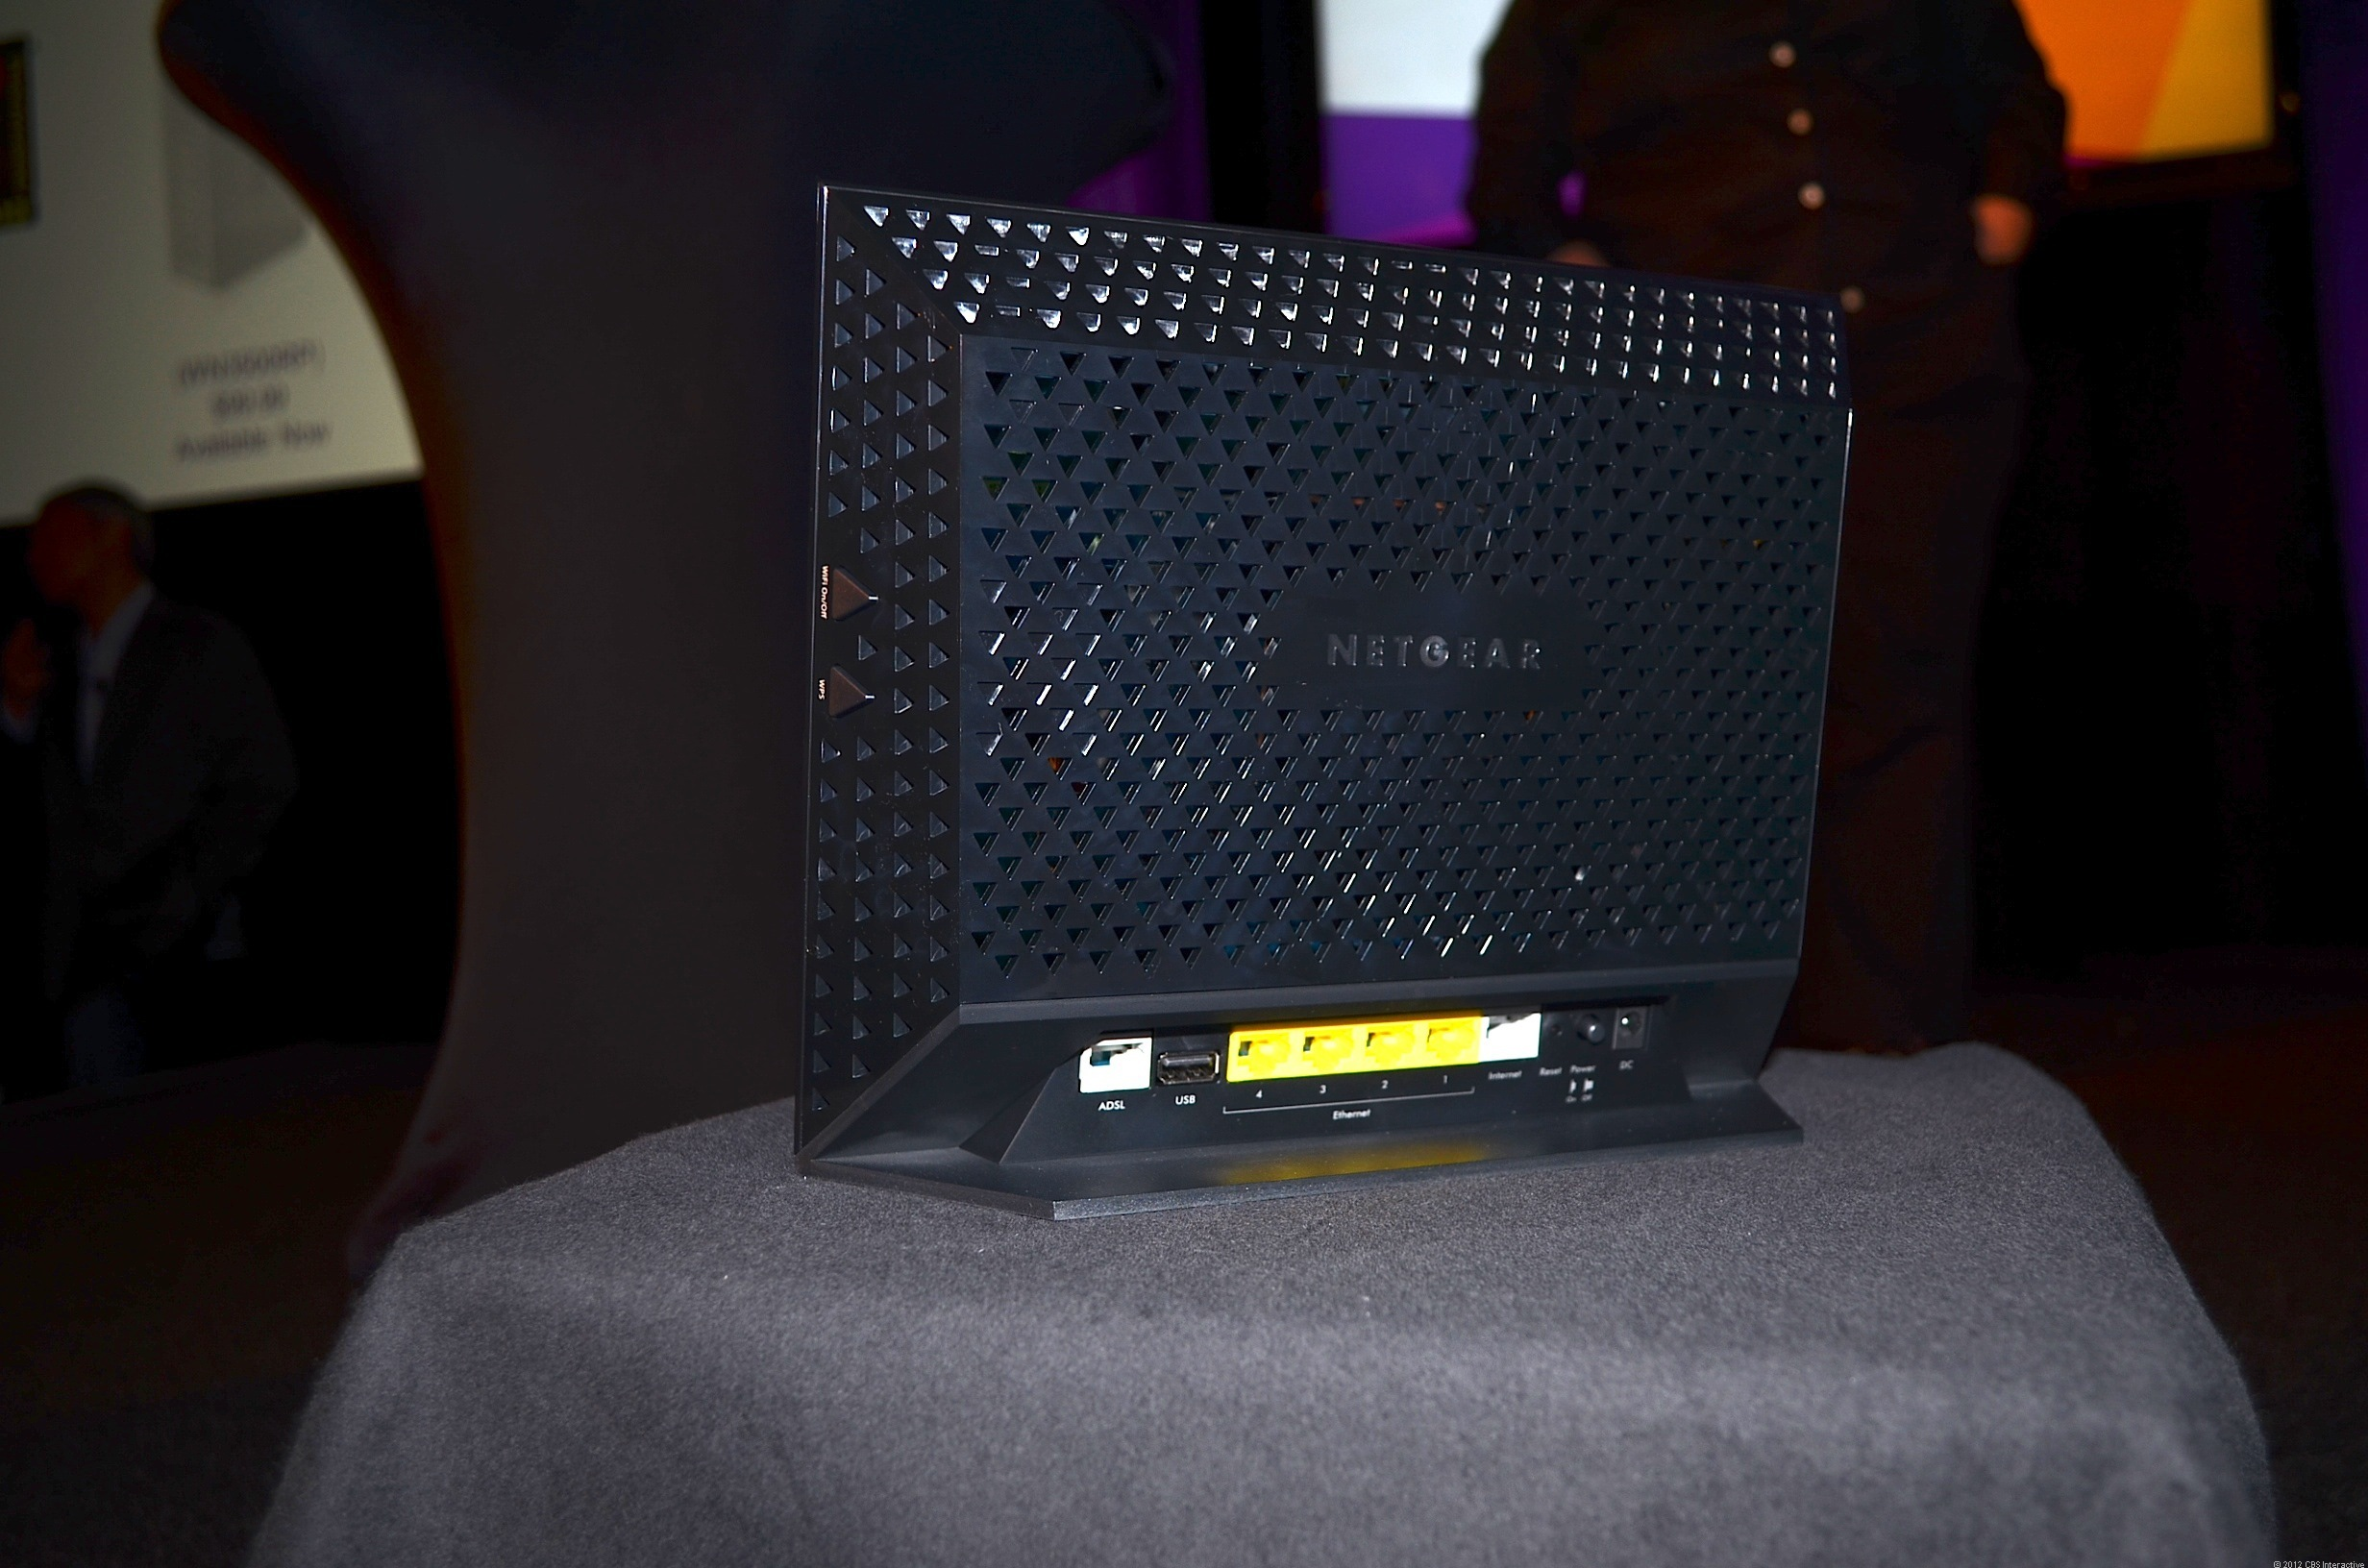 The D6200 802.11ac router/ADSL modem combo looks exactly like the R6200 or R6300 router, with the addition of an ADSL port.